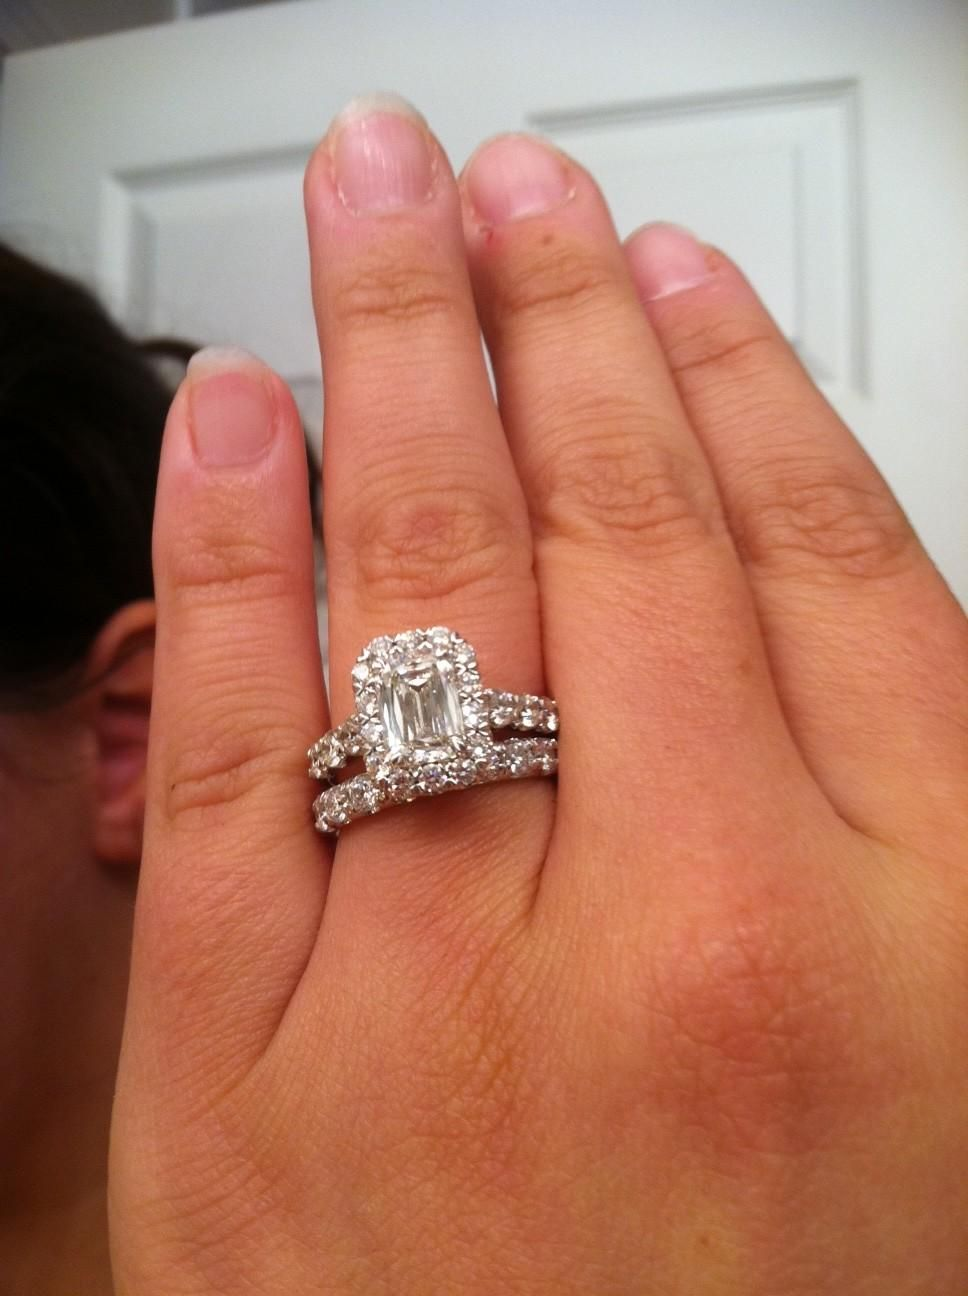 Emerald Cut Diamond Engagement Ring With Baguettes And Halo Images 3 Carat  34